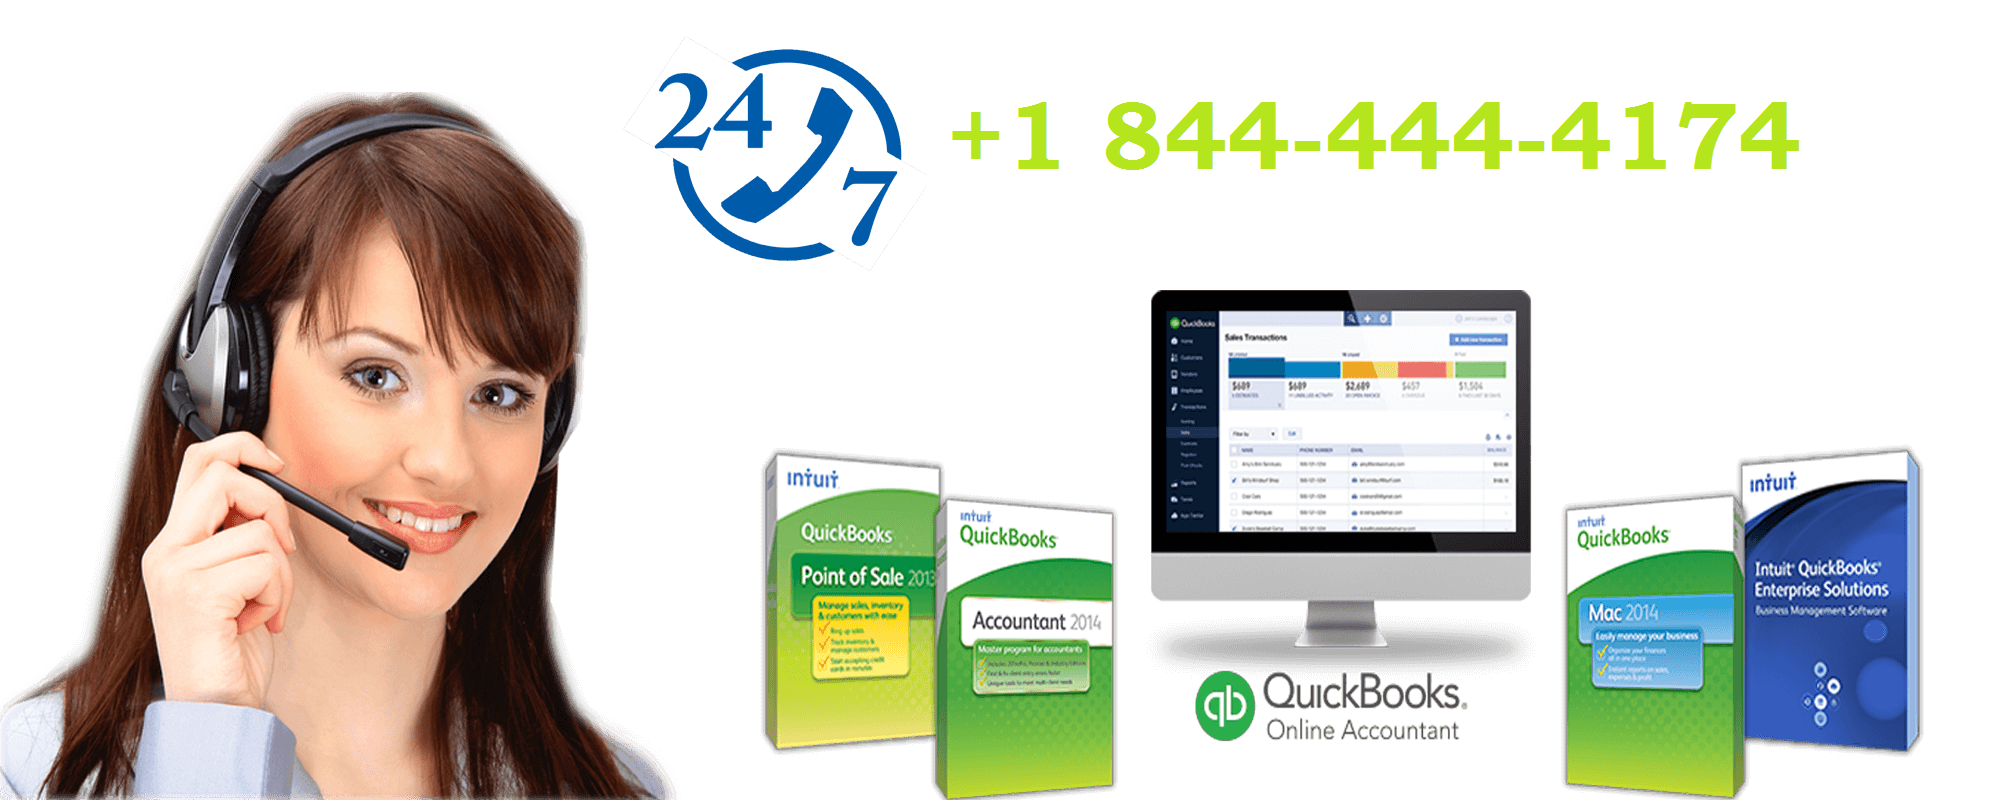 QuickBooks Payroll Support Phone number +1-844-444-4174